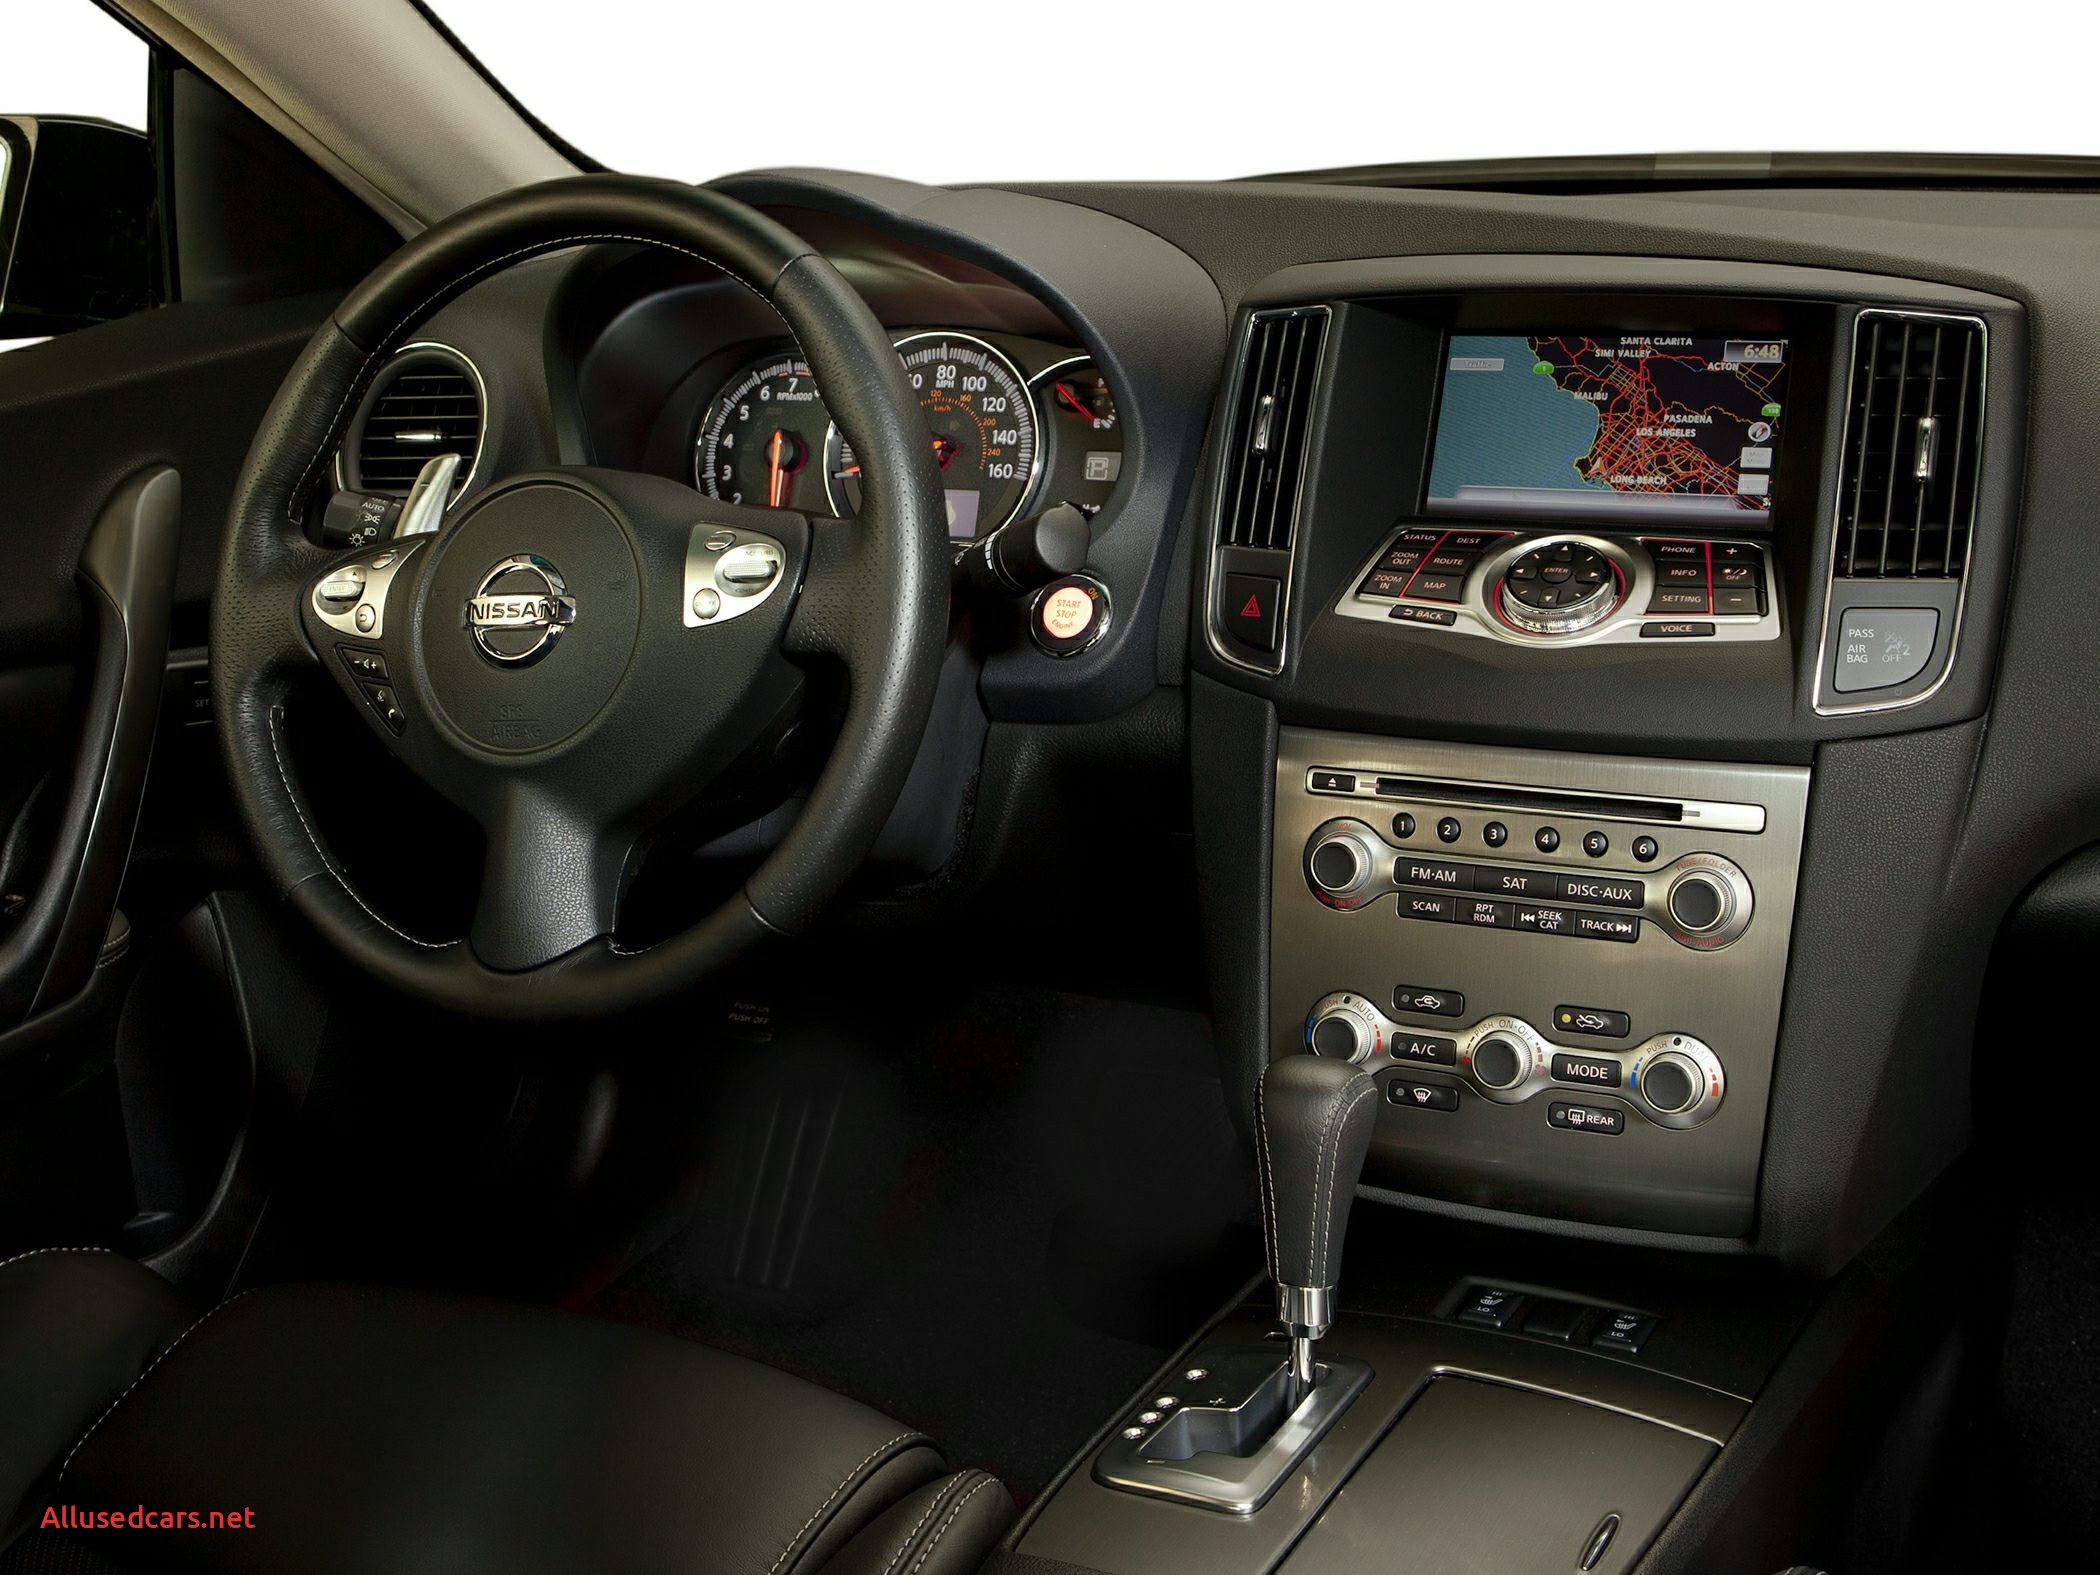 2014 Nissan Maxima Beautiful 62 Best My Rides Images